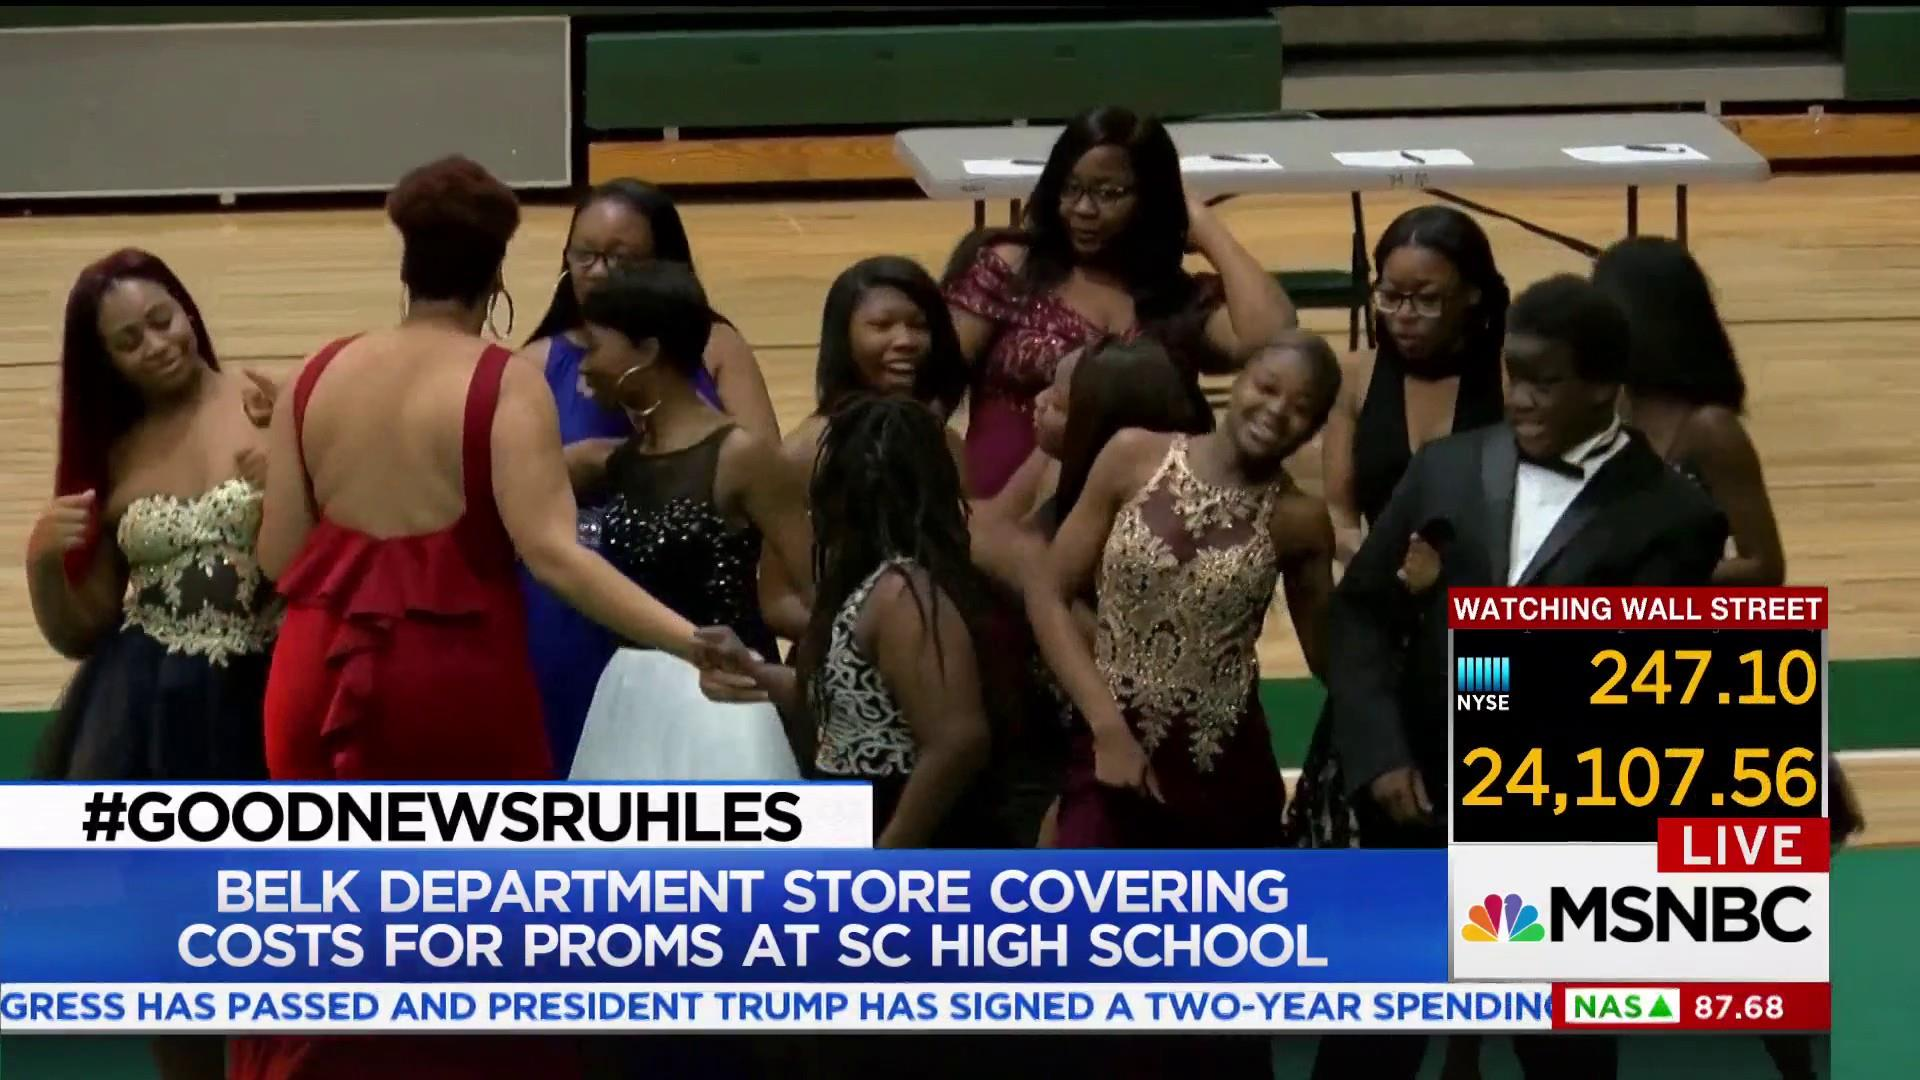 #GoodNewsRuhles: Belk funds SC High School Prom